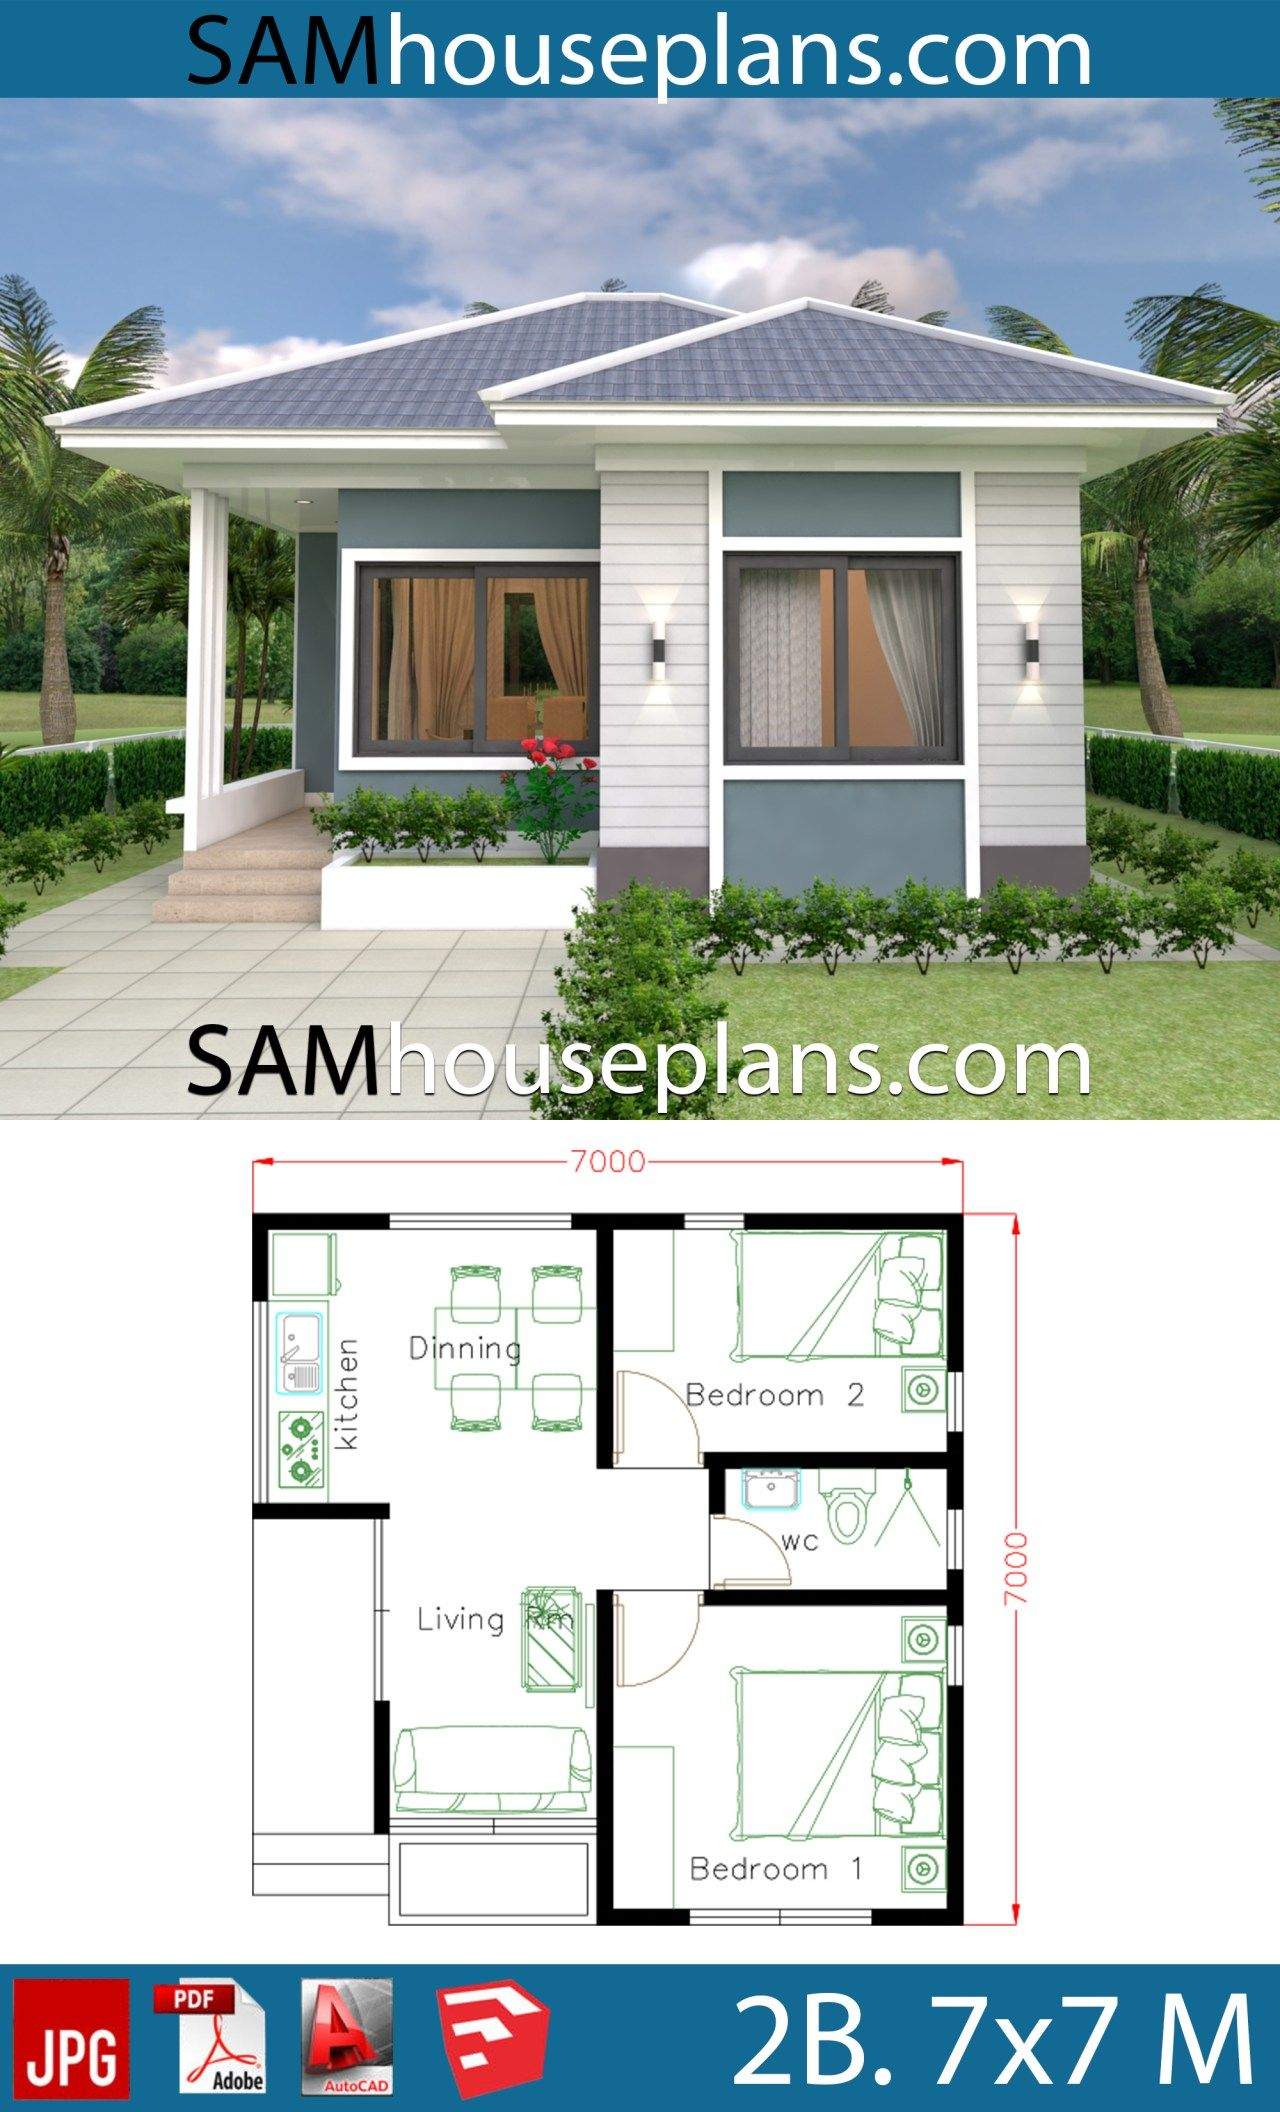 House Plans 7x7 With 2 Bedrooms Full Plans Sam House Plans Small House Design Plans Small House Design House Plans